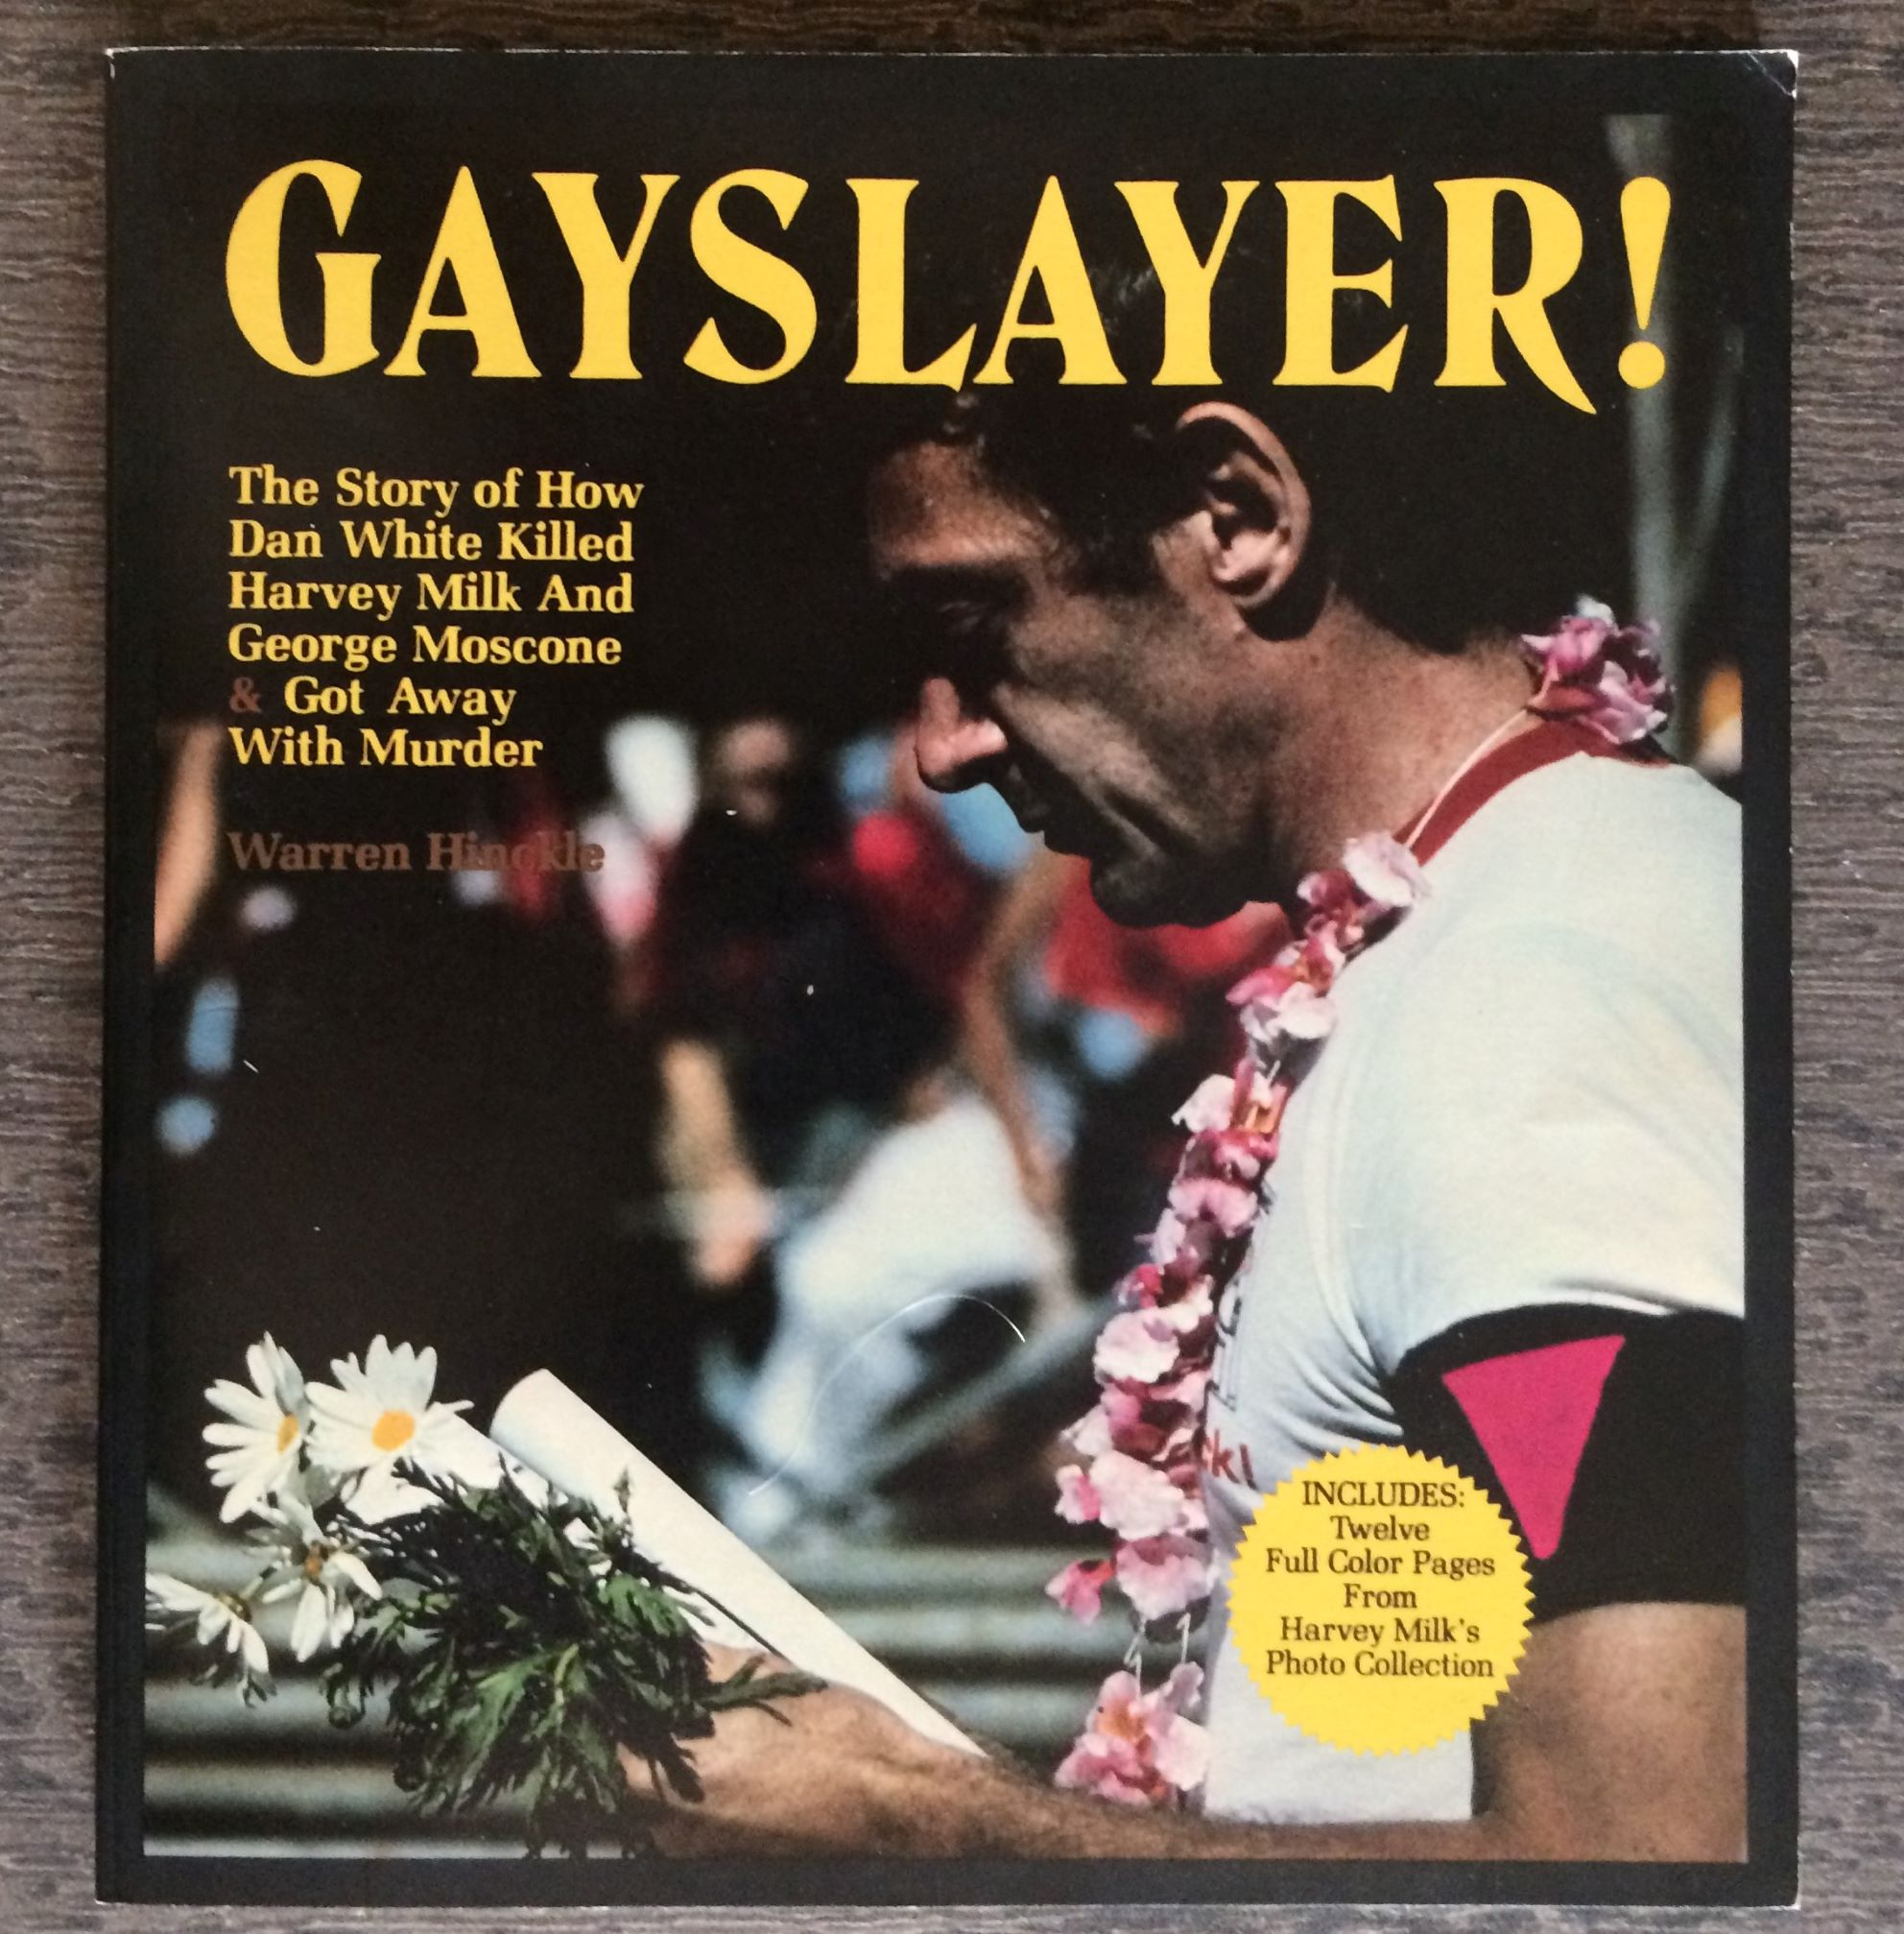 Image for Gayslayer! The Story of How Dan White Killed Harvey Milk and George Moscone & Got Away with Murder. (Inscribed by the author, with Hinckle for Mayor Handbill).